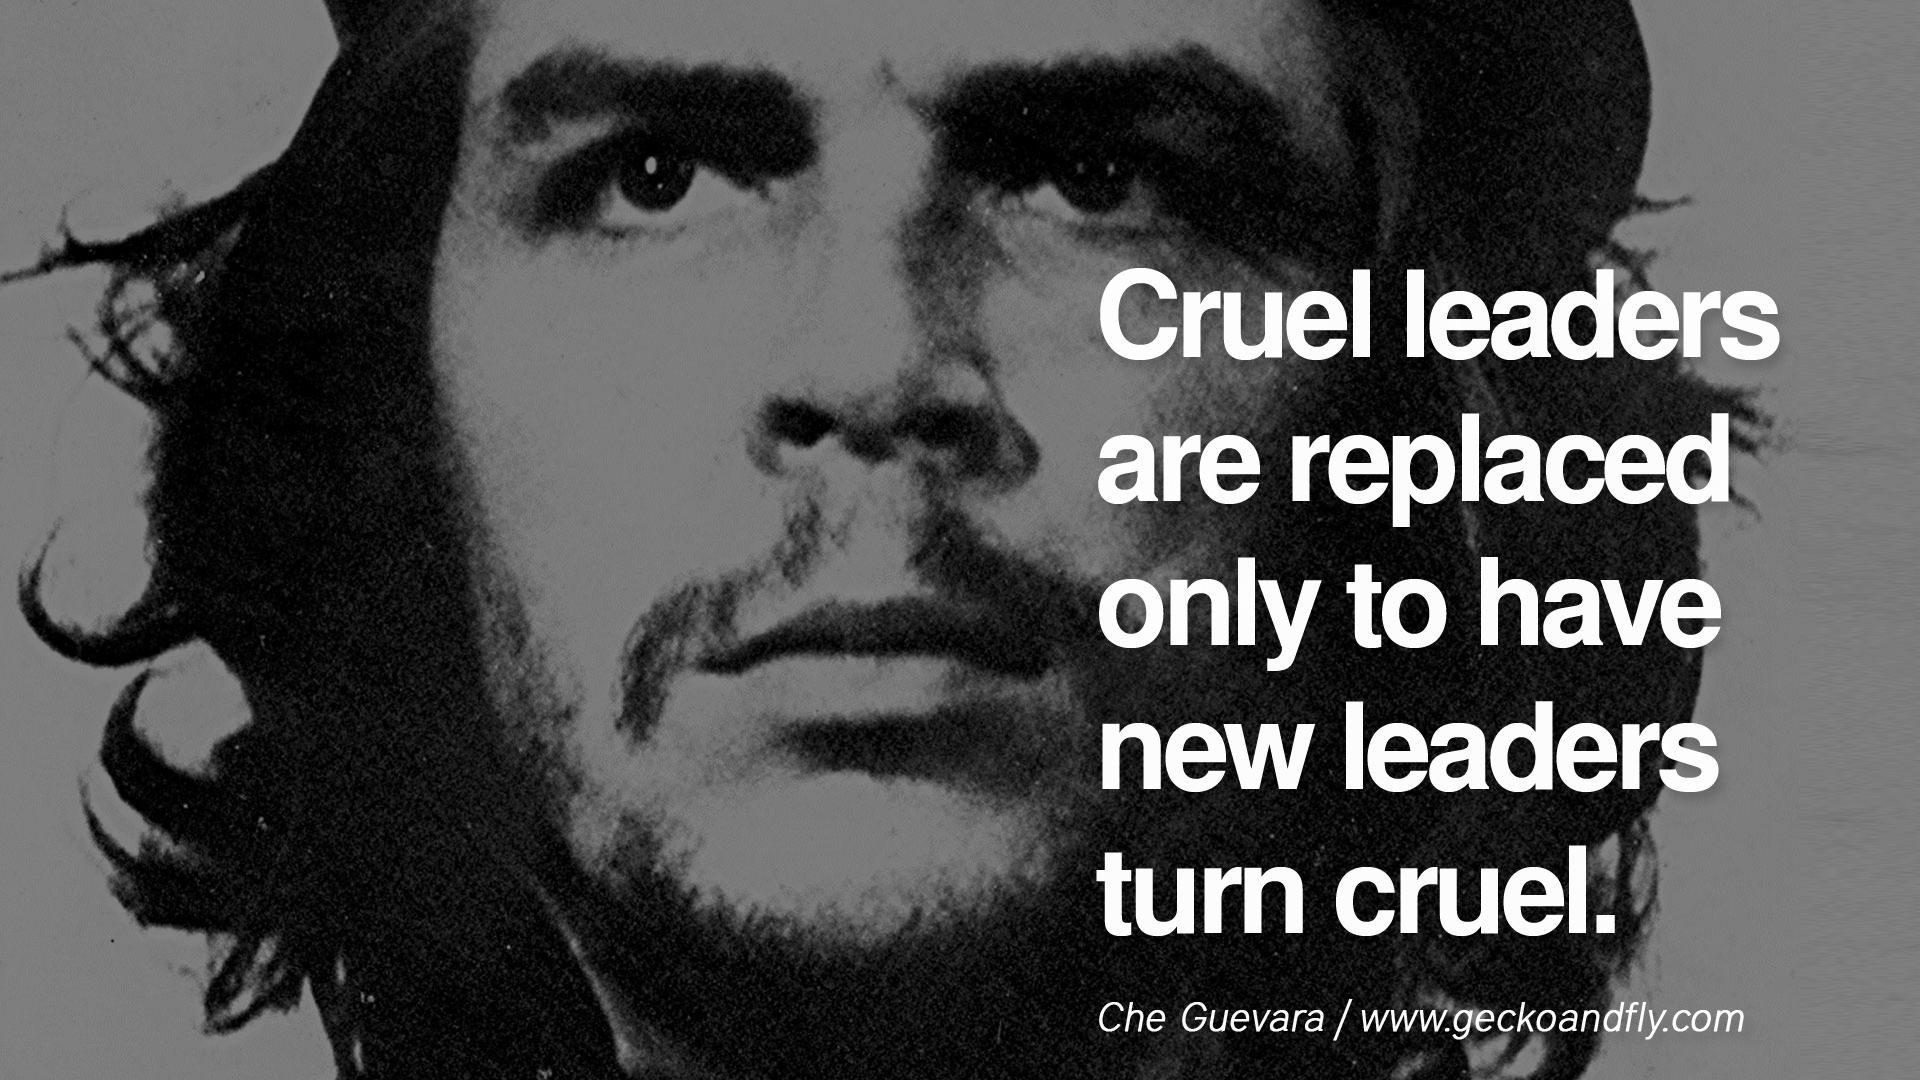 10 Famous Quotes By Some Of The World S Worst Dictators Dictator Quotes Che Guevara Quotes Famous Quotes